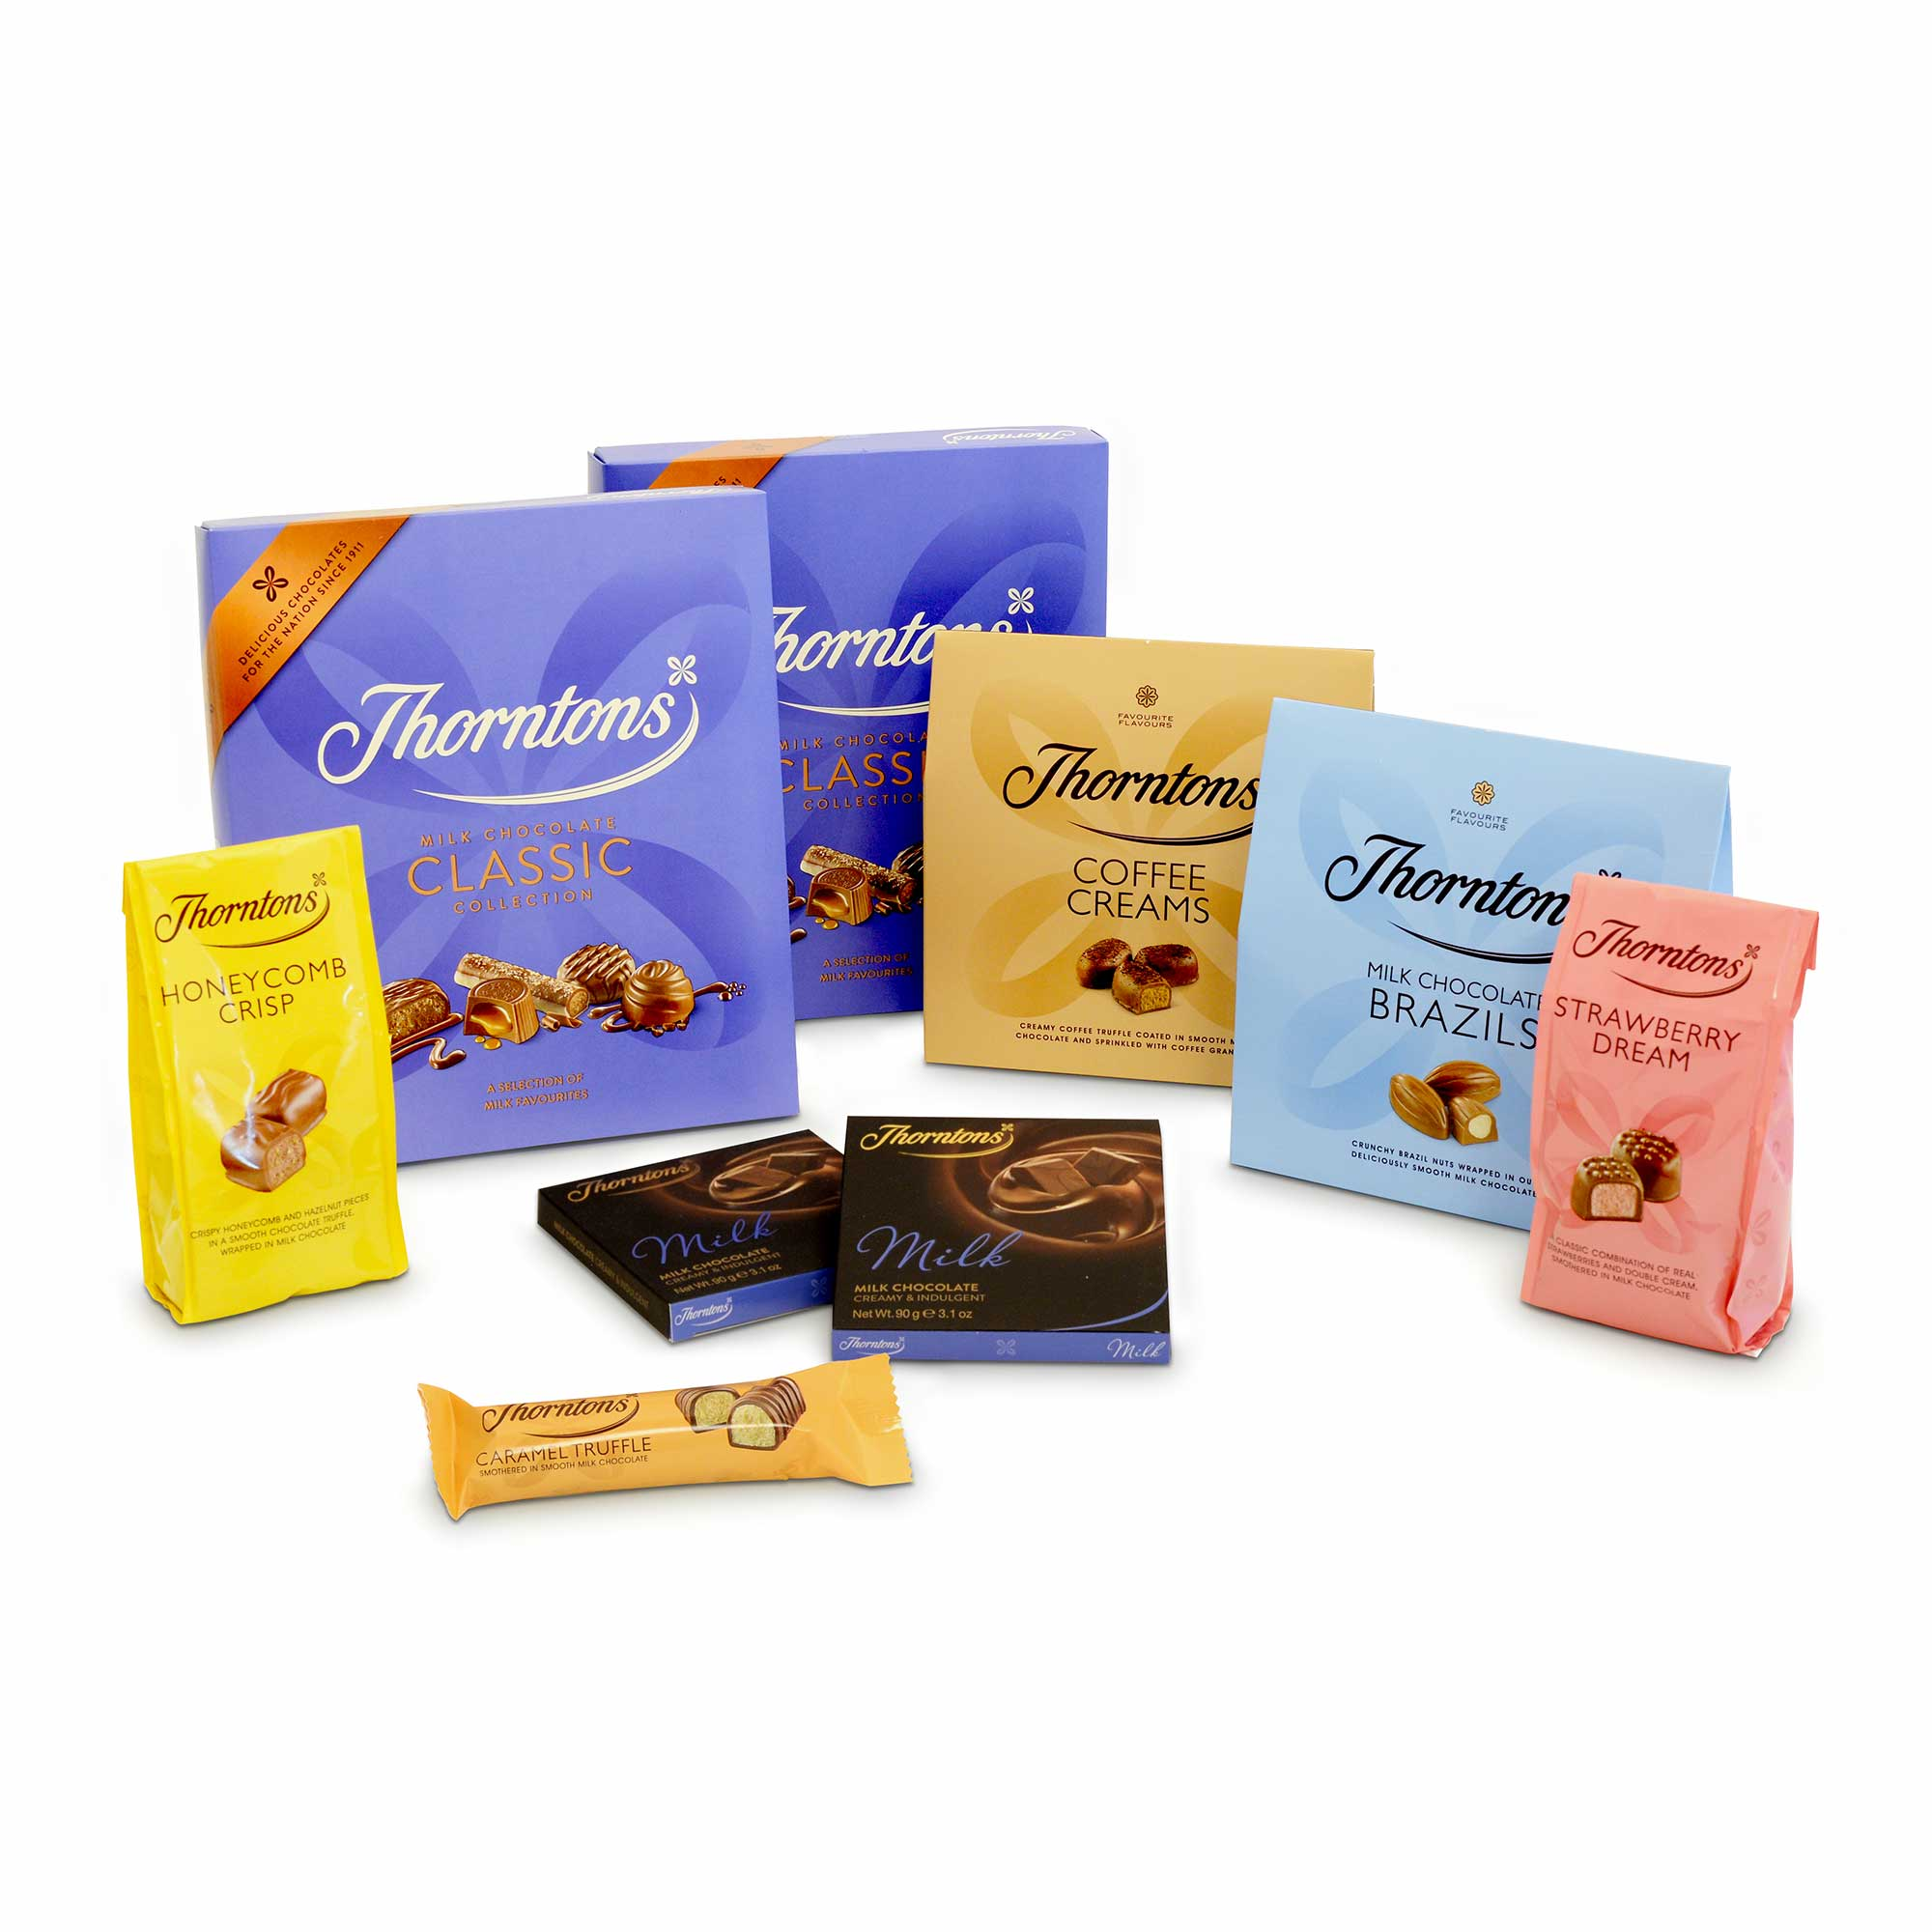 Thorntons free delivery discount code: Enjoy your savings to the fullest by grabbing this deal from this online vendor to receive these superb Easter Orders at the lowest cost. Presenting some of the verified deals and offers for Thorntons. This is the most recent offer available for Thorntons.